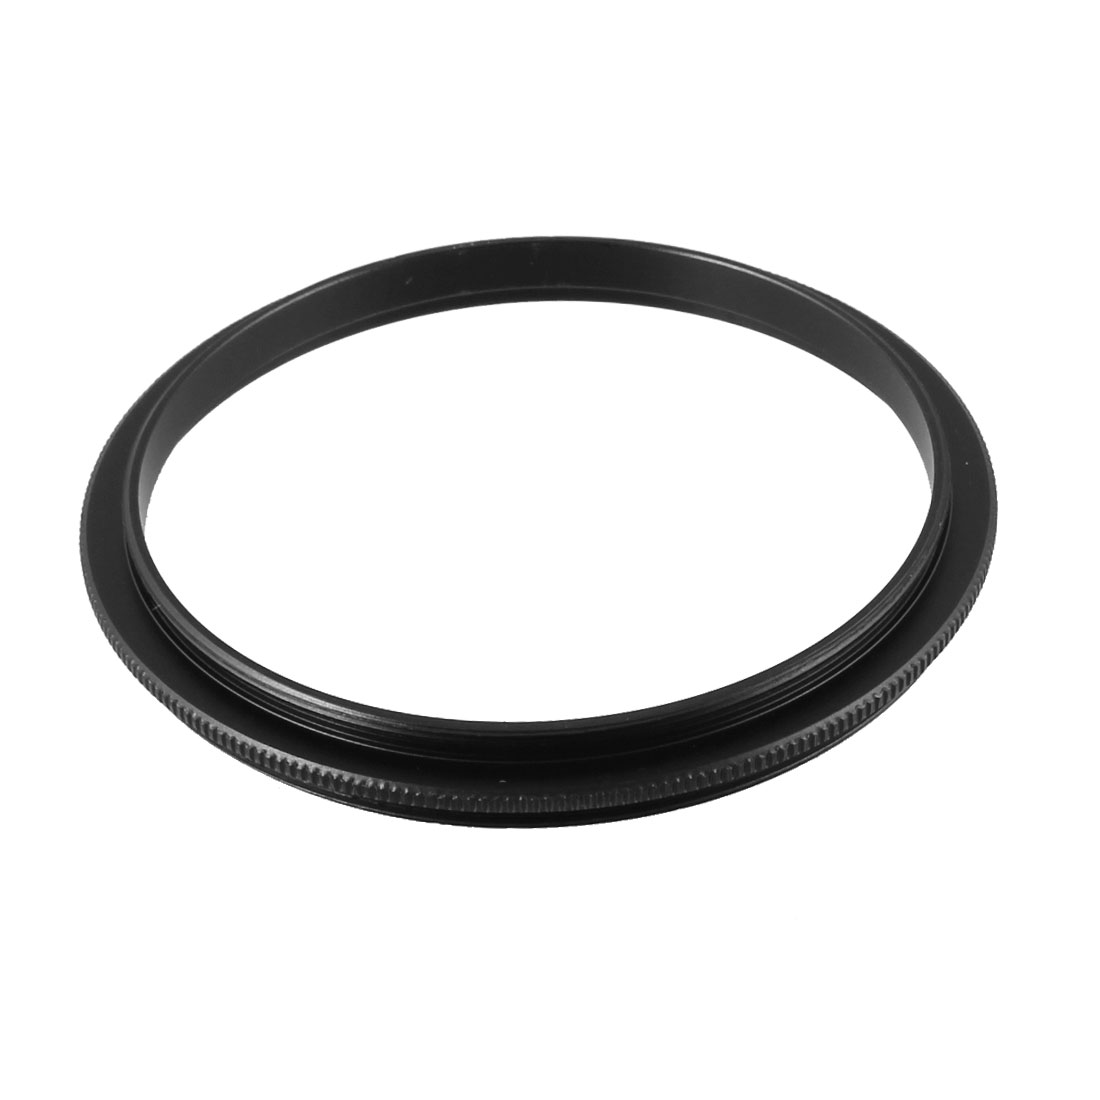 58mm-62mm 58mm to 62mm Male to Male Step up Ring Adapter Black for Camera